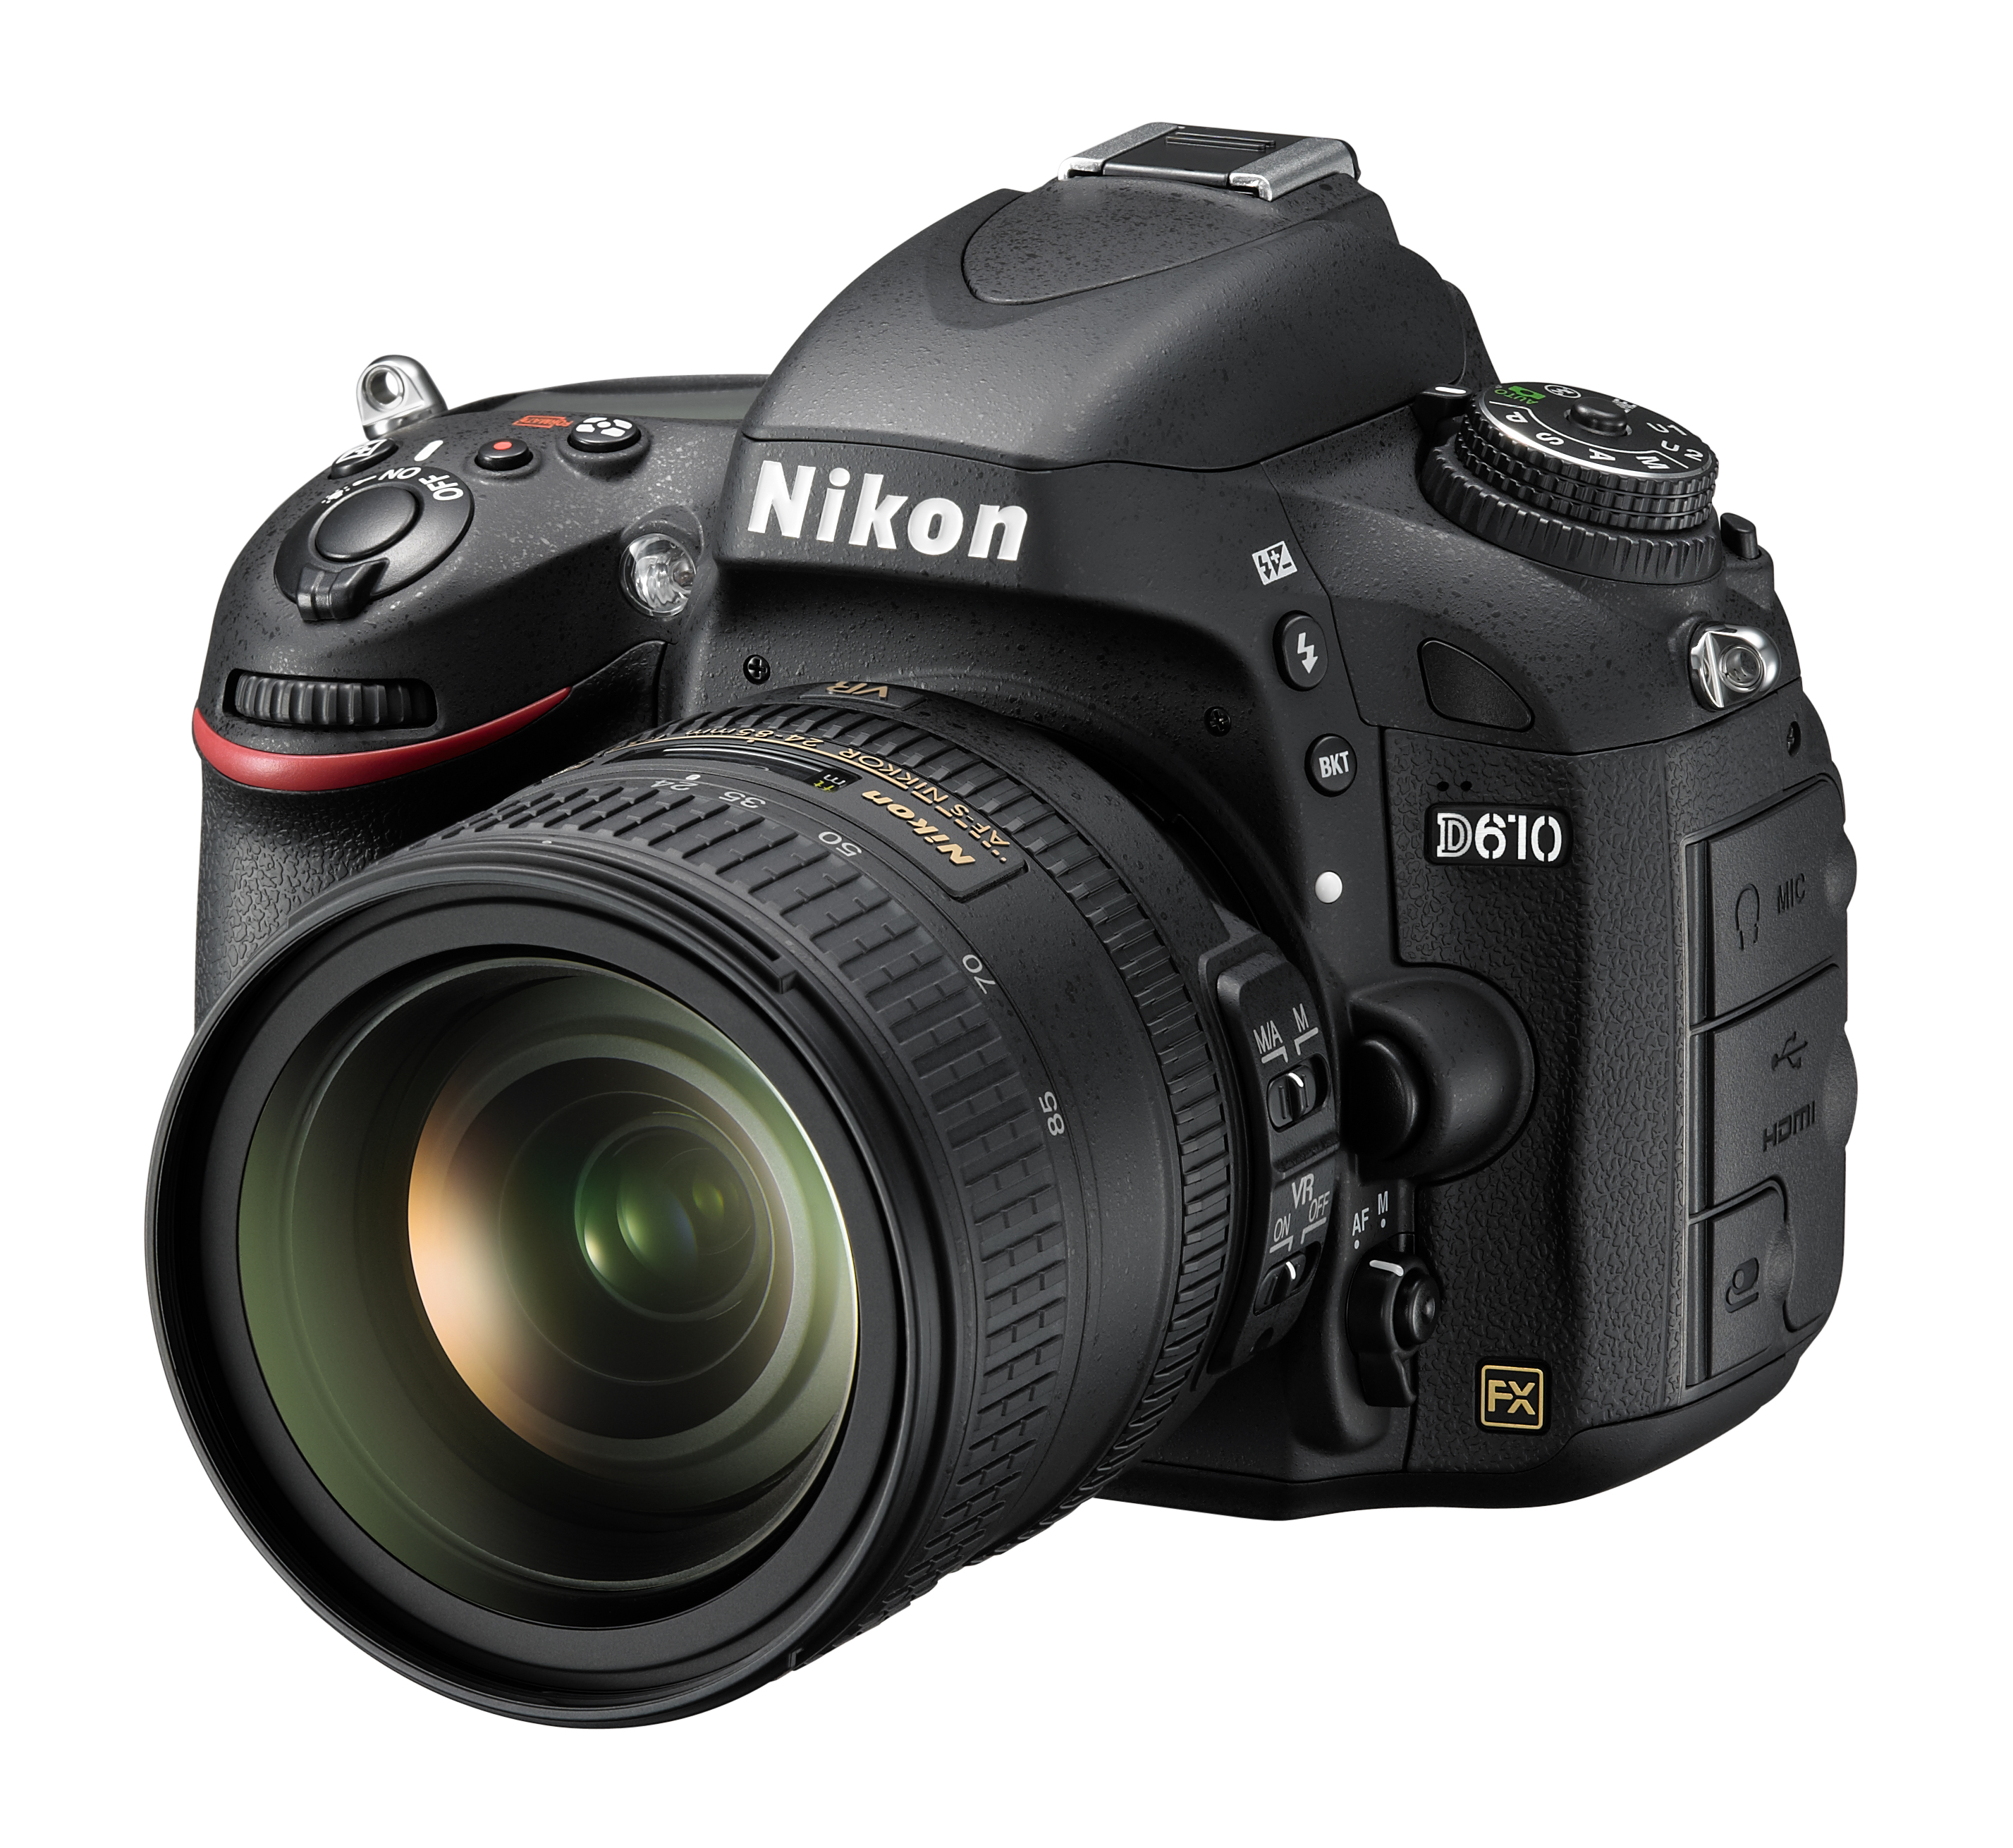 Фотоаппарат Nikon D610 Kit 24-85mm f/3.5-4.5G IF-ED AF-S VR Zoom-Nikkor